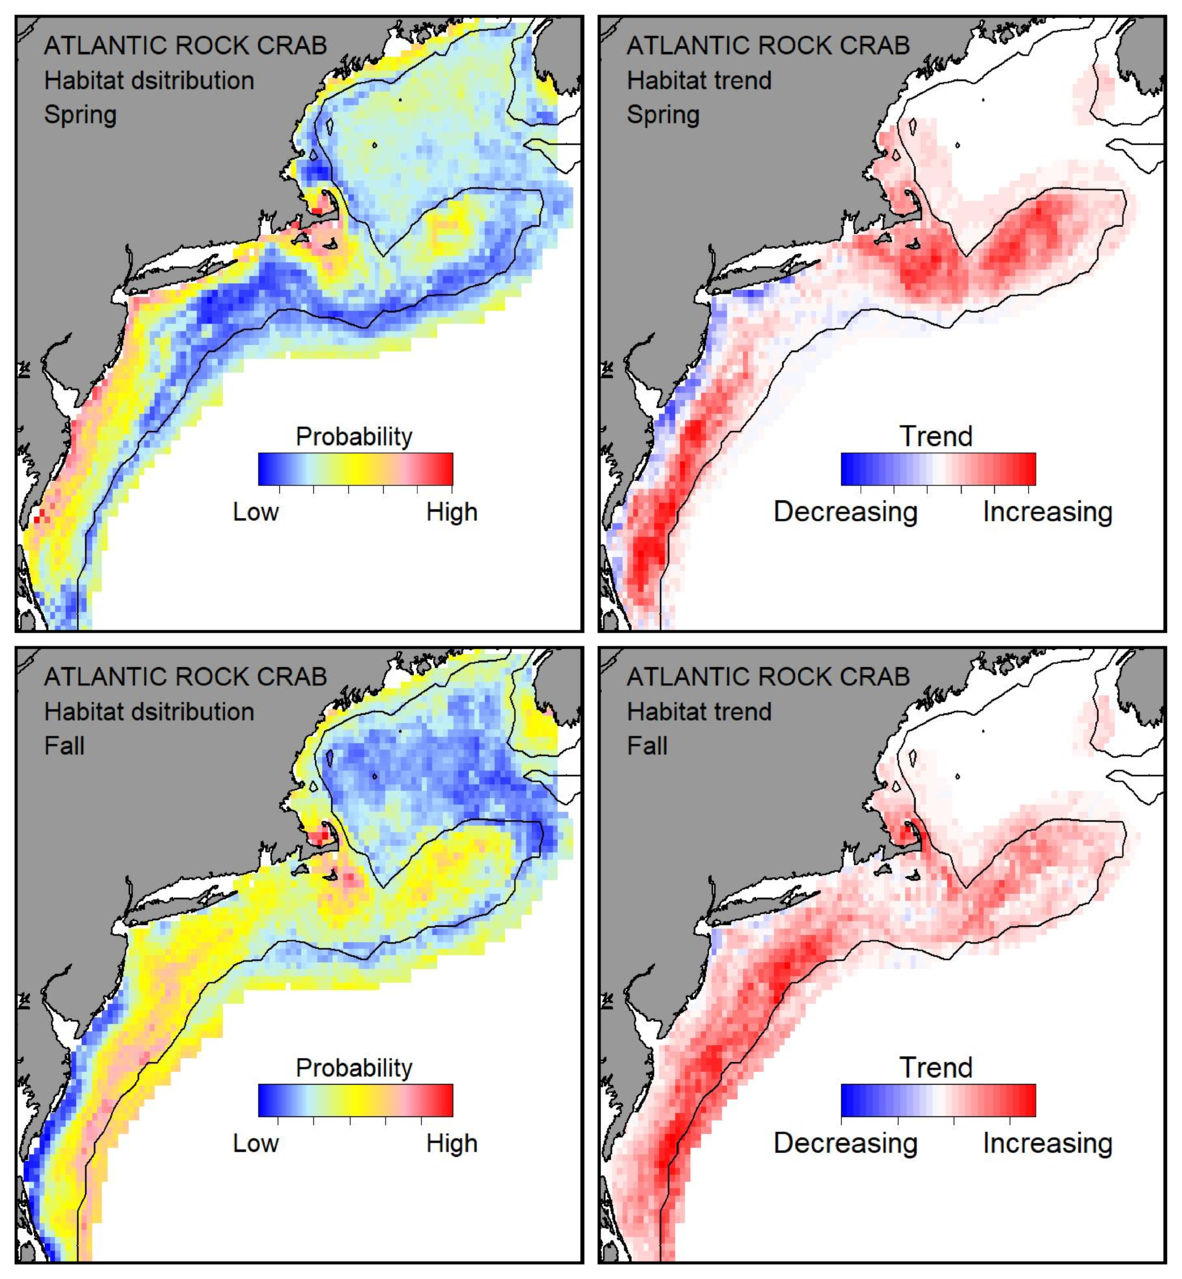 Probable habitat distribution for Atlantic rock crab showing the highest concentration and increasing trend in the Gulf of Maine during the spring. Bottom row: Probable habitat distribution for Atlantic rock crab showing the highest concentration and increasing trend in the Gulf of Maine during the fall.